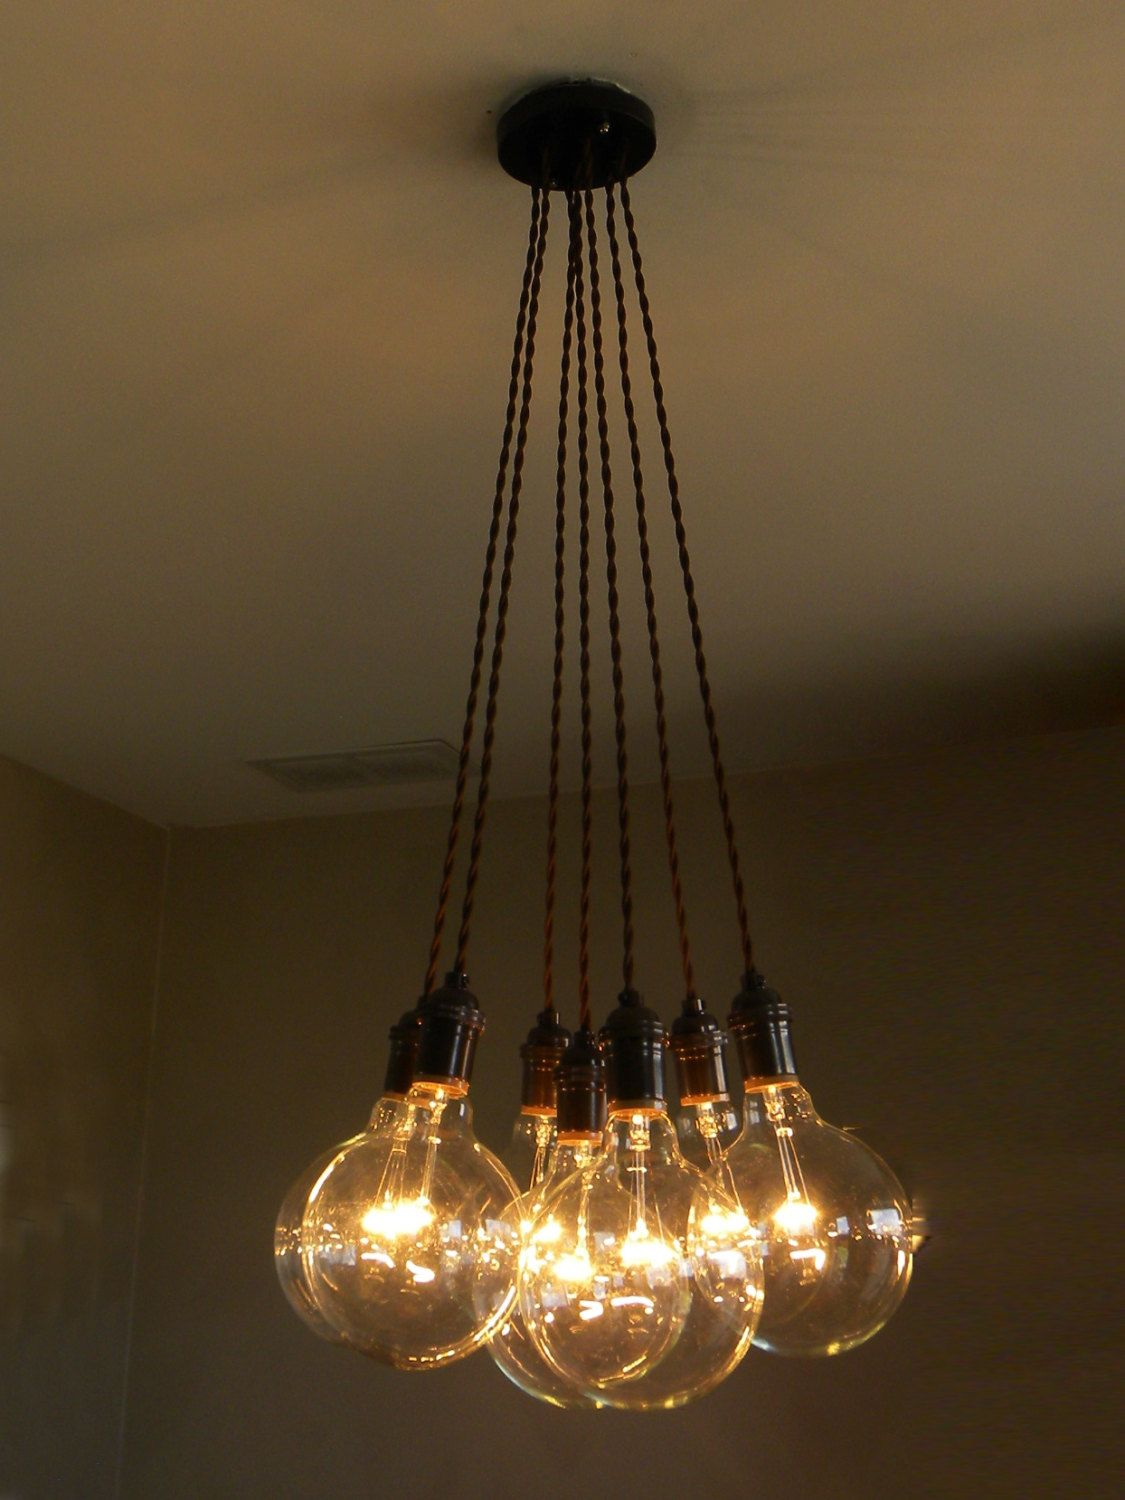 7 Cluster Pendant Chandelier Modern Lighting Hanging Cloth Cords Lamp Ceiling Fixture Custom Colors And Light Bulbs